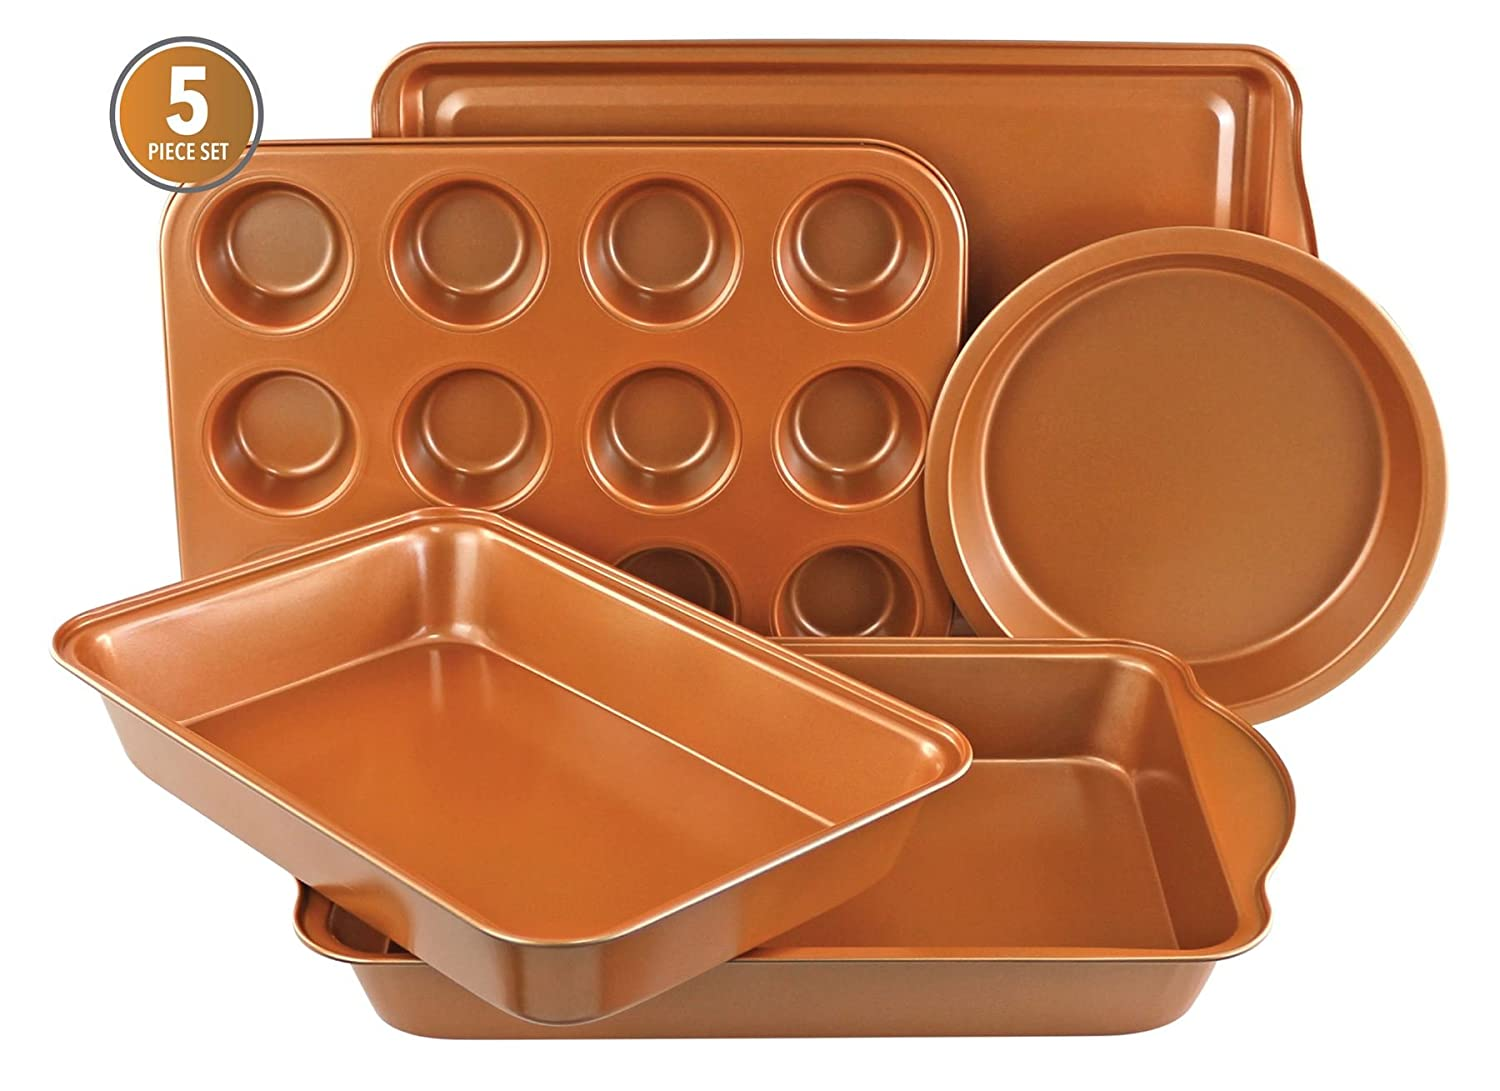 Gr8 Home Non Stick Copper 5 Piece Cake Baking Tin Roasting Oven Biscuit Cupcake Muffin Tray Baking Pan Set Ovenware Cookware Dreamland Products HK Ltd